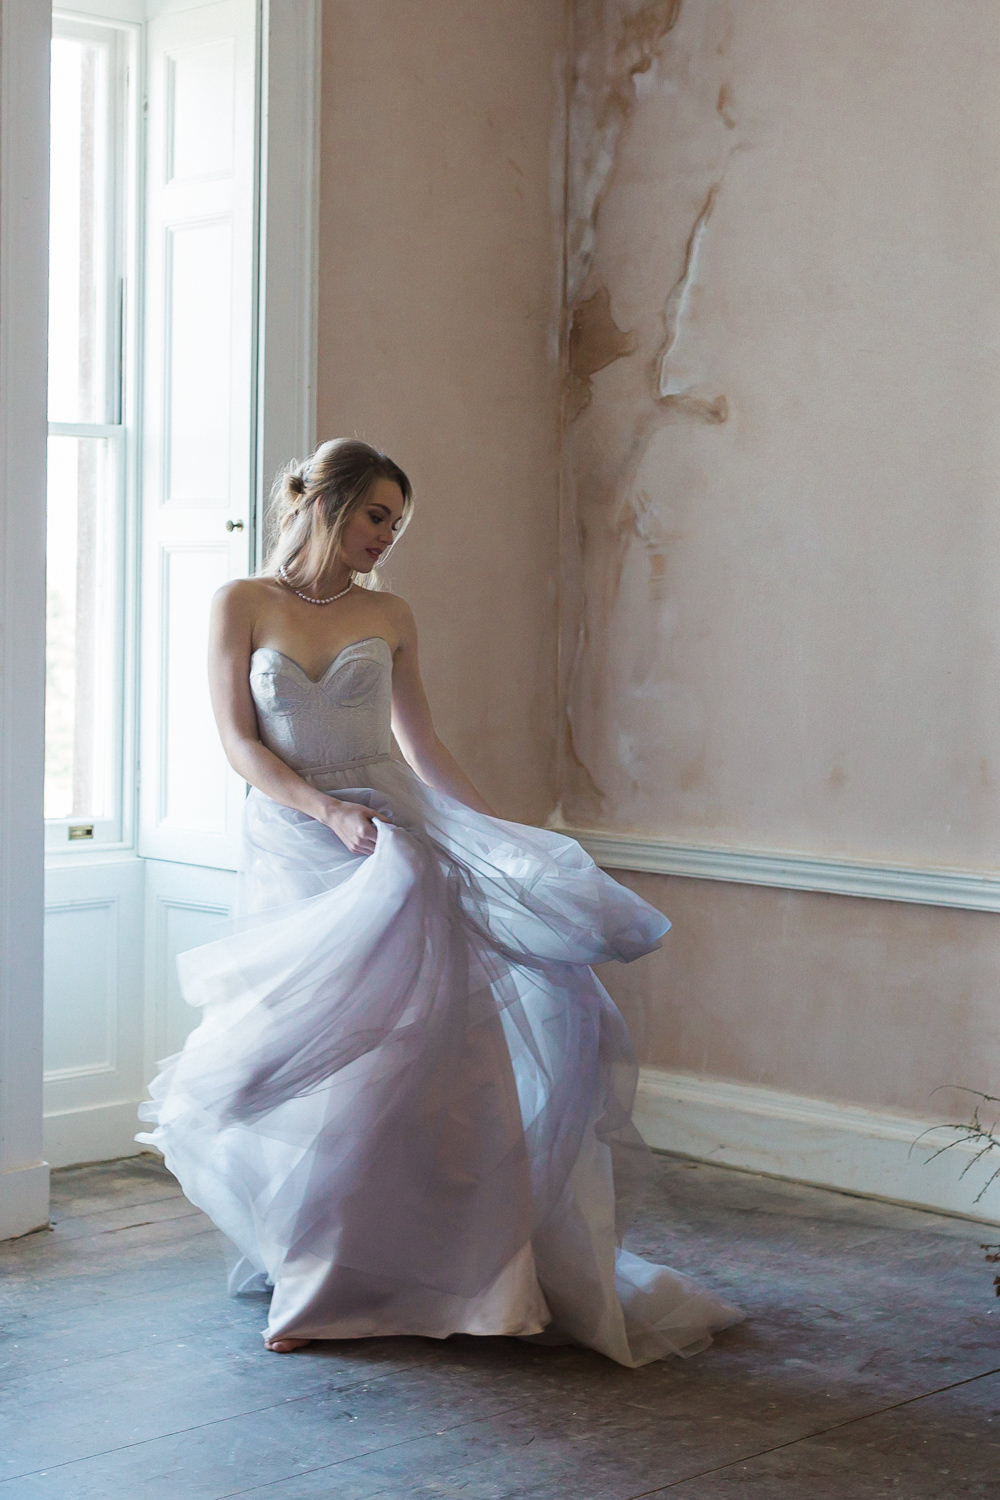 Modern Dance Ballet Inspired Editorial Fine Art Somerley House Dusty Pink Walls Bride Lilac Dress Naomi Neoh | Romantic Soft Wedding Ideas Siobhan H Photography